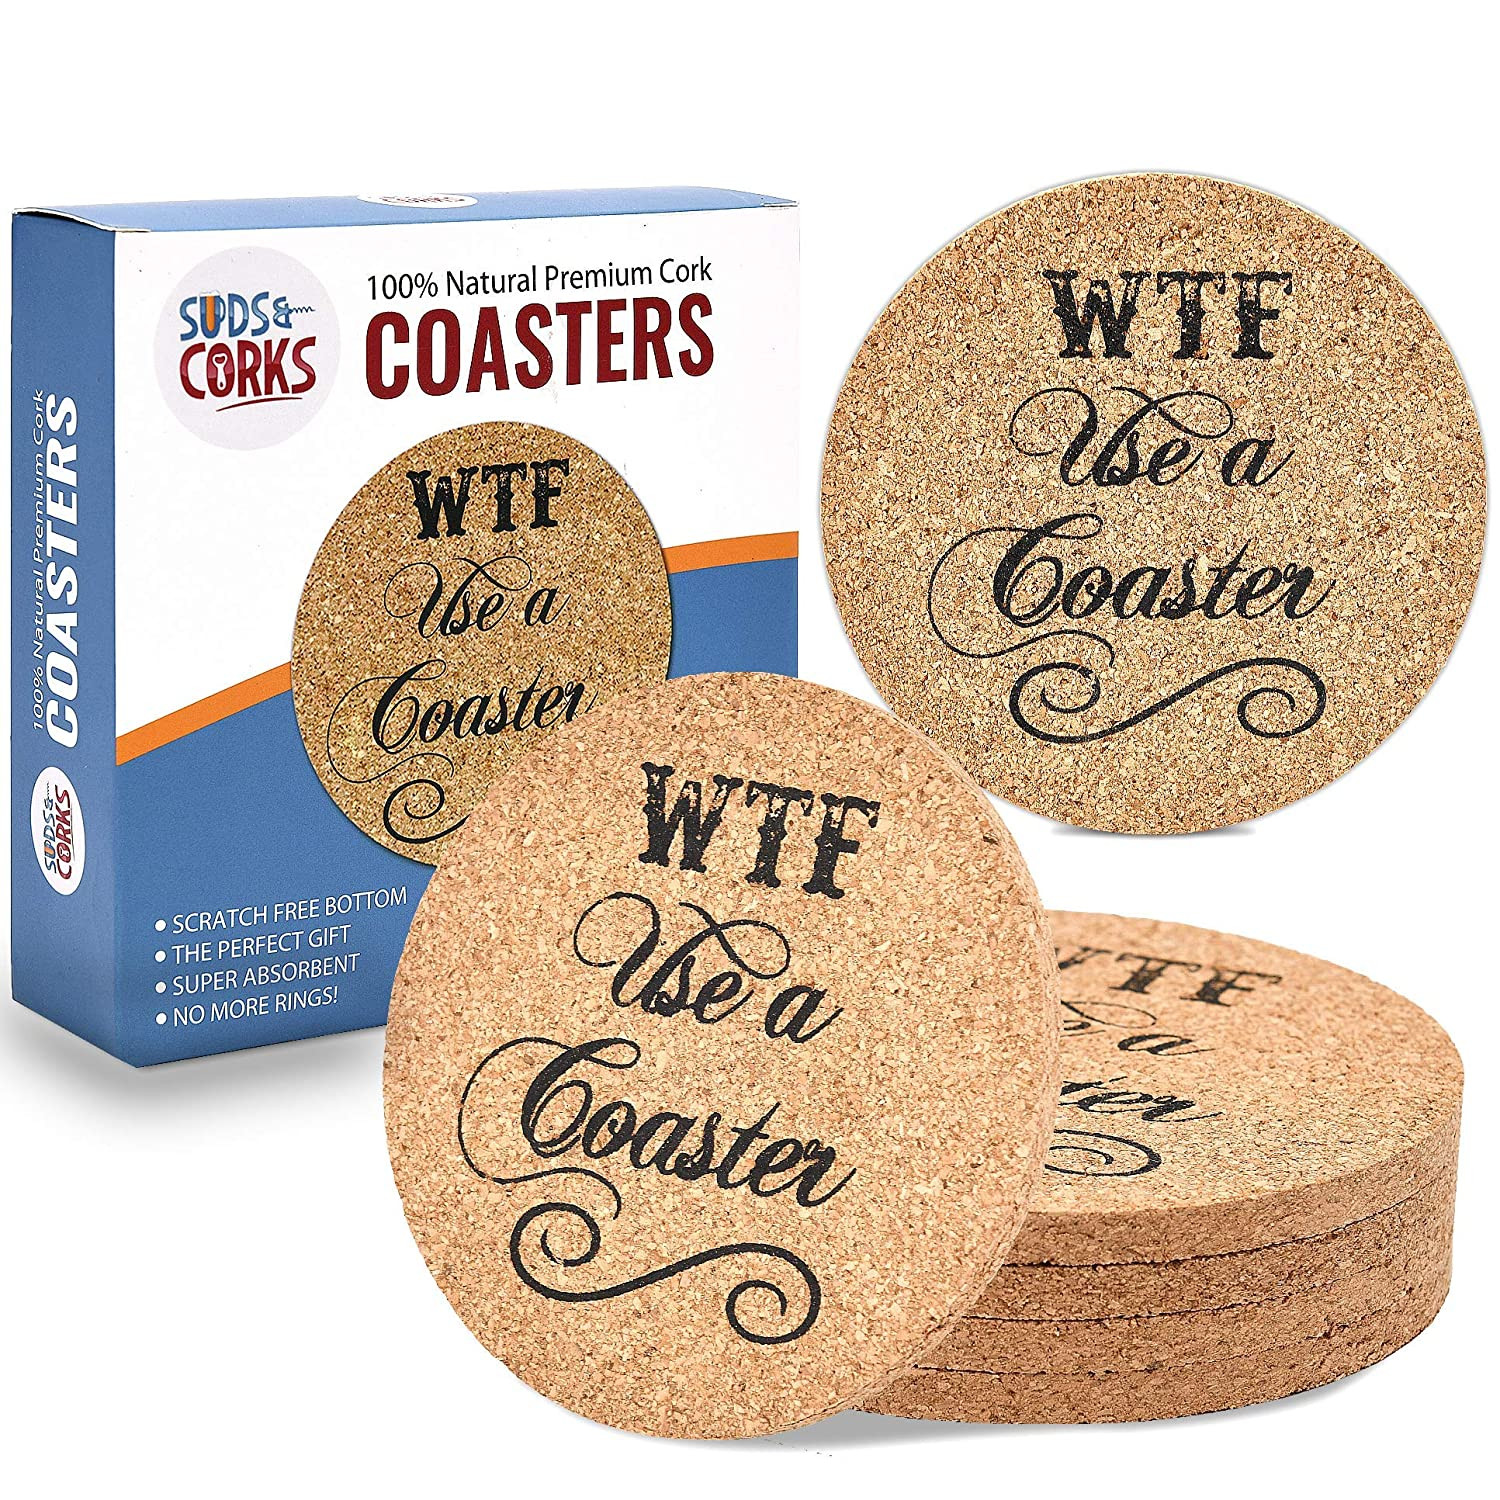 Funny Bar Coasters for Glasses - Premium 5mm Cork Coaster, Best Housewarming or Alcohol Gifts, Funny Man Cave Decor Stuff, Dont F Up the Table (6 Pack)